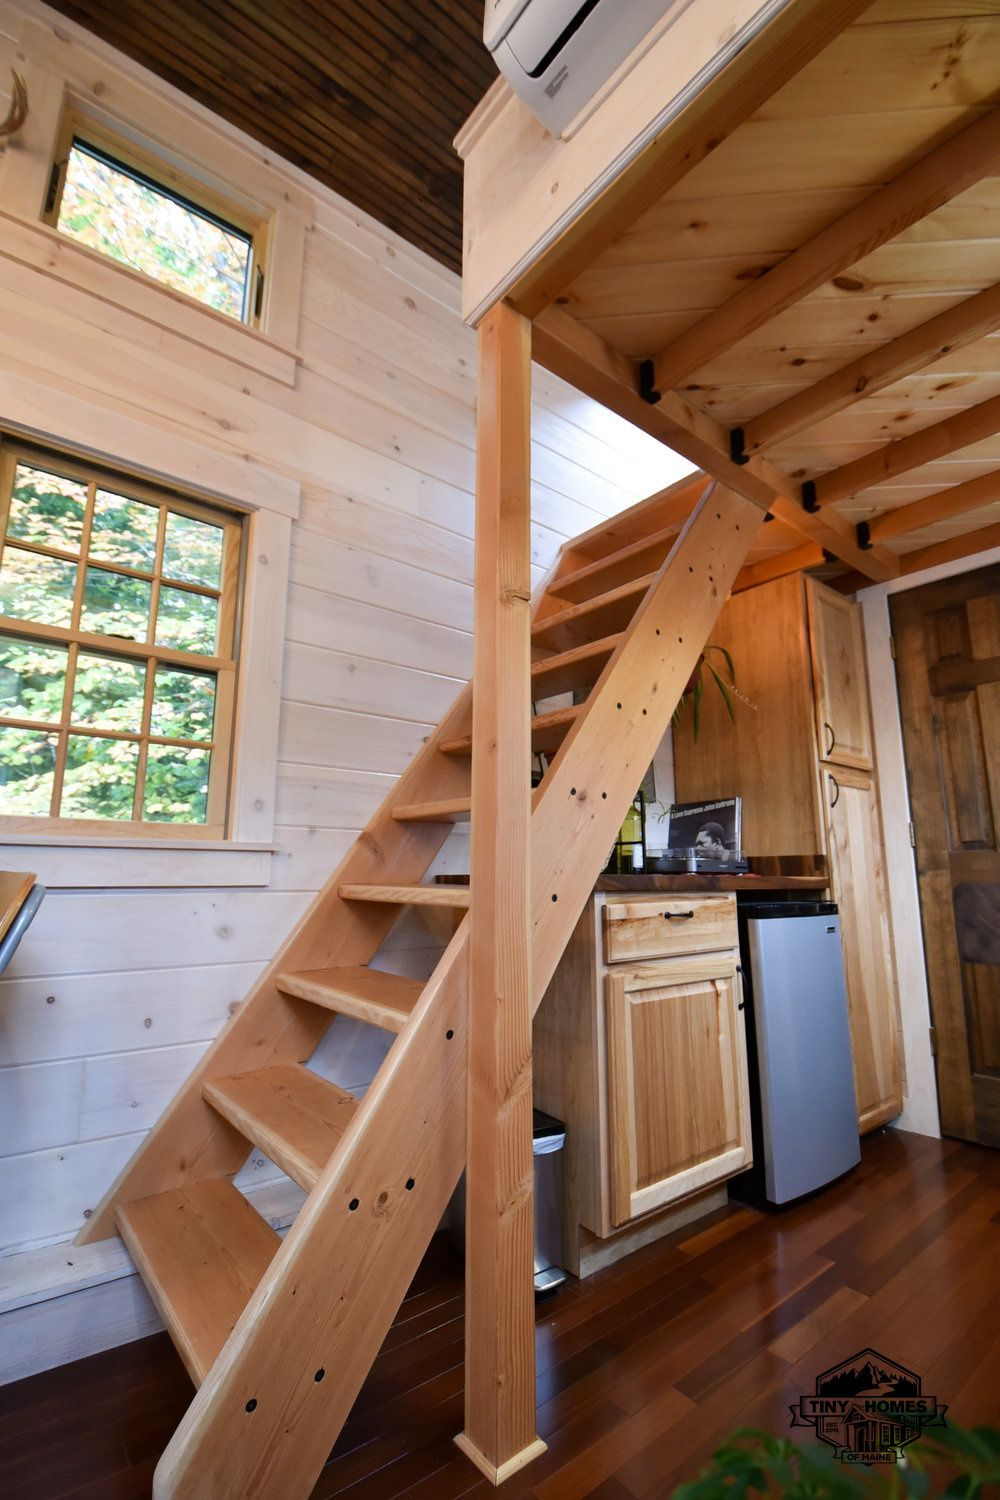 Phenomenal A Charming One Bedroom Tiny House On Wheels Designed And Complete Home Design Collection Papxelindsey Bellcom